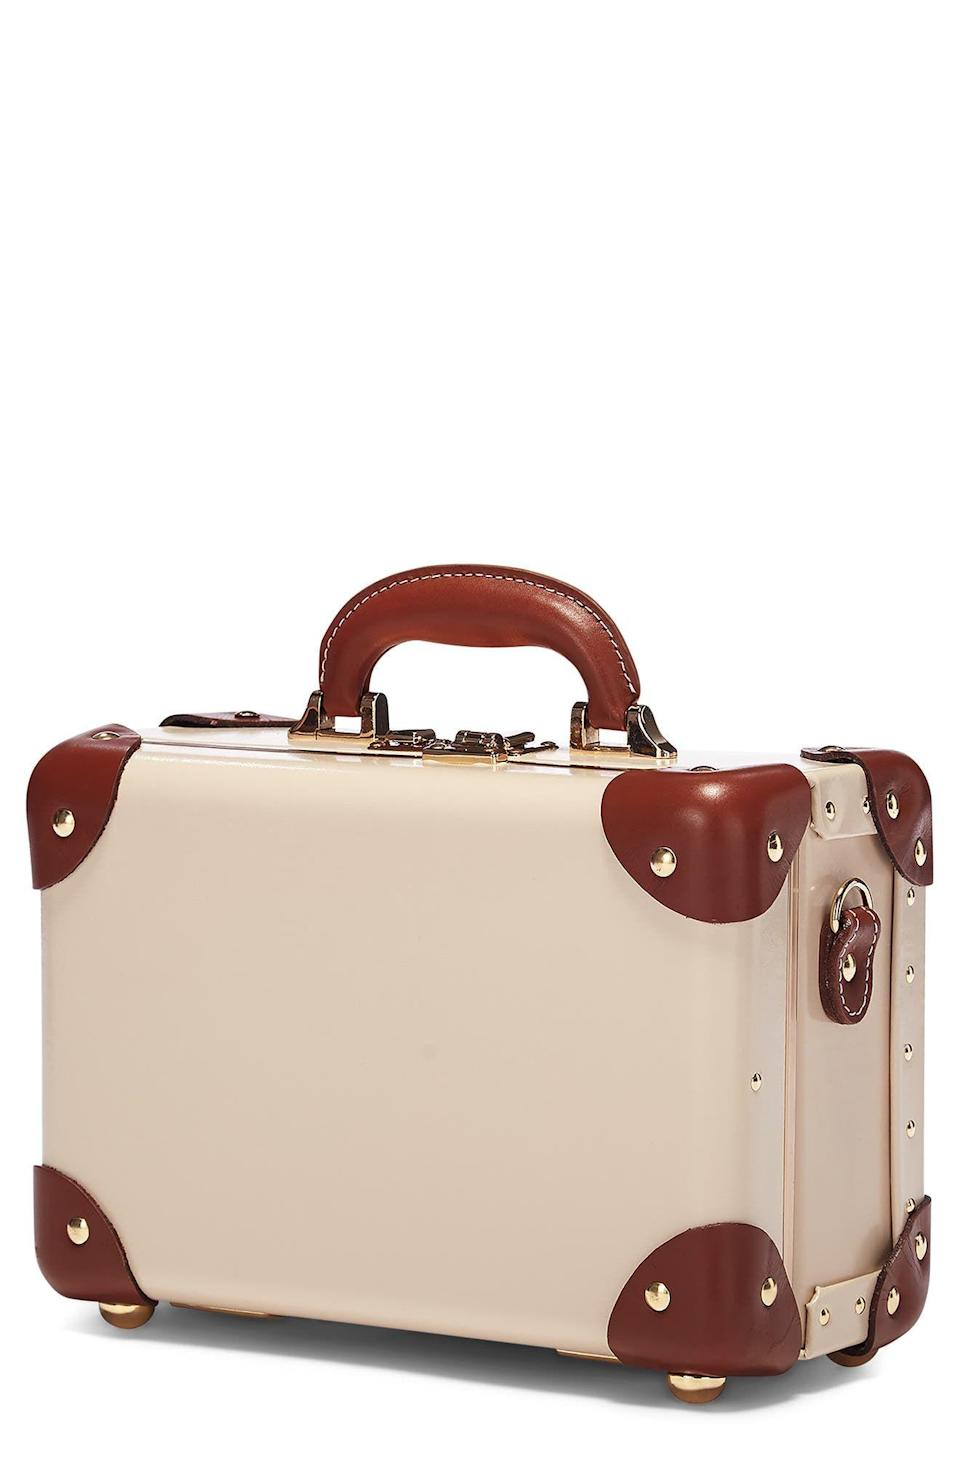 """<p><strong>STEAMLINE LUGGAGE</strong></p><p>nordstrom.com</p><p><strong>$395.00</strong></p><p><a href=""""https://go.redirectingat.com?id=74968X1596630&url=https%3A%2F%2Fwww.nordstrom.com%2Fs%2Fsteamline-luggage-the-diplomat-vanity-case%2F5926198&sref=https%3A%2F%2Fwww.elledecor.com%2Flife-culture%2Ftravel%2Fg36806316%2Fsummer-travel-necessities%2F"""" rel=""""nofollow noopener"""" target=""""_blank"""" data-ylk=""""slk:Shop Now"""" class=""""link rapid-noclick-resp"""">Shop Now</a></p><p>Can a cosmetic bag be any more stylish? Store all your beauty necessities in this mini luggage case—the hard, structured exterior will keep your all your toiletries and makeup safe.</p>"""